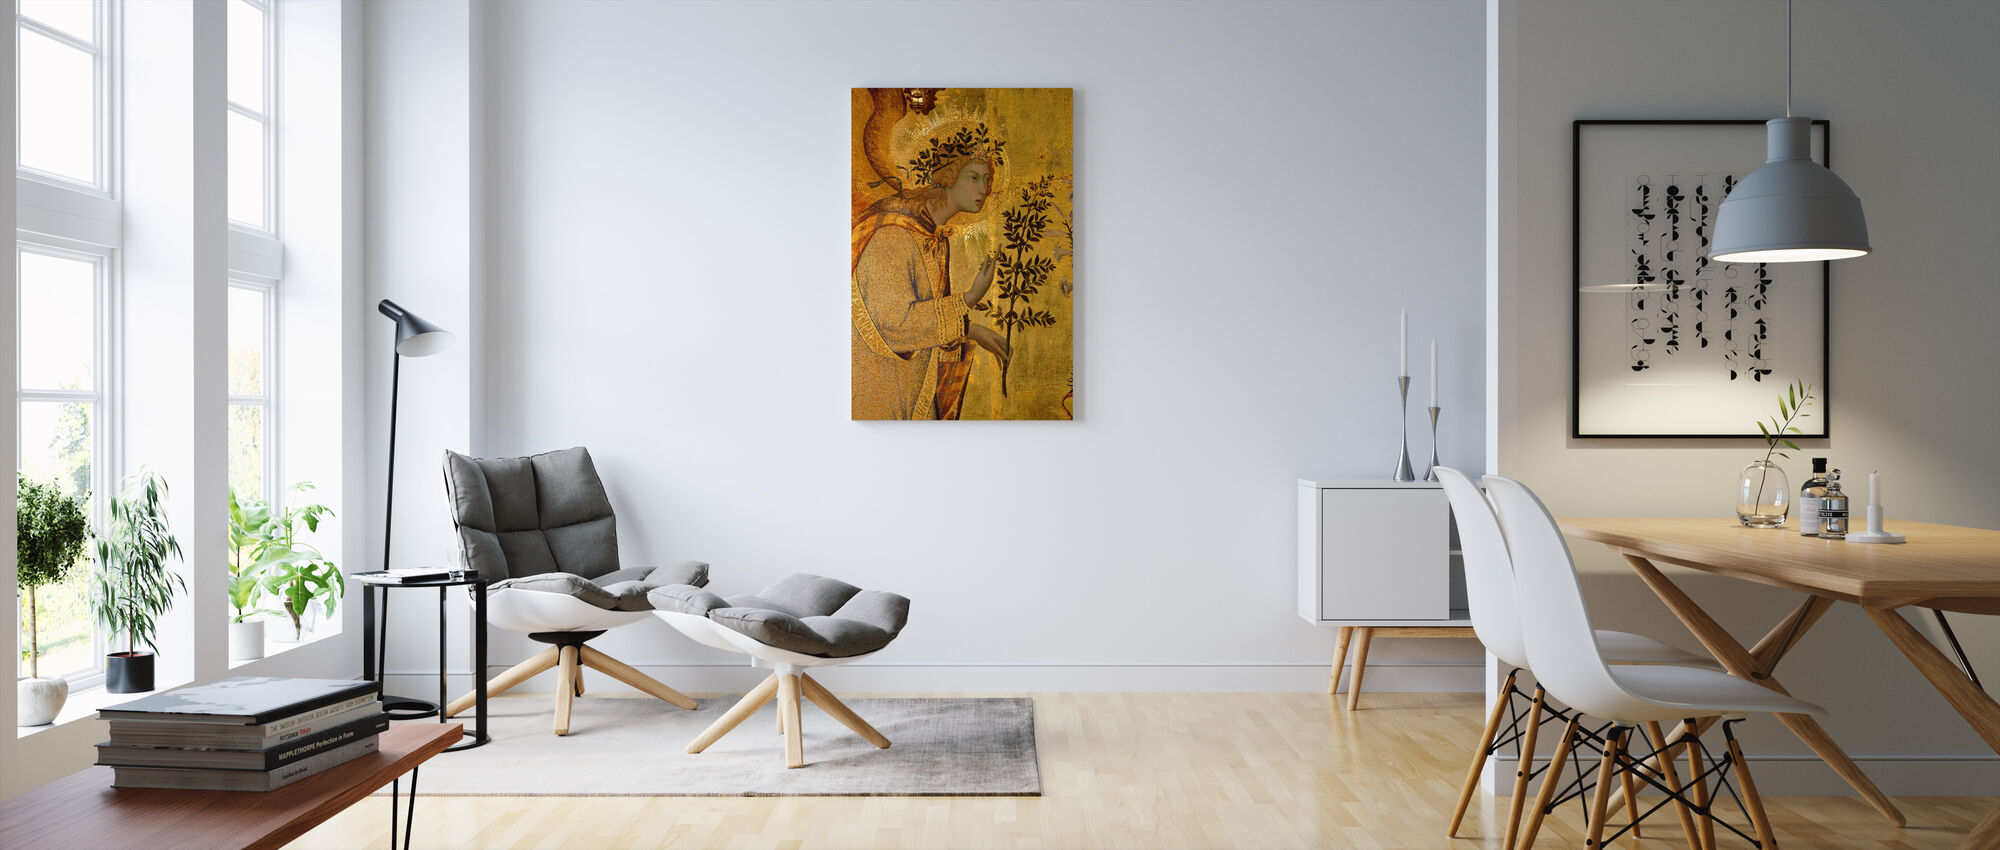 Annunciation Detail The Angel of the Annunciation - Canvas print - Living Room